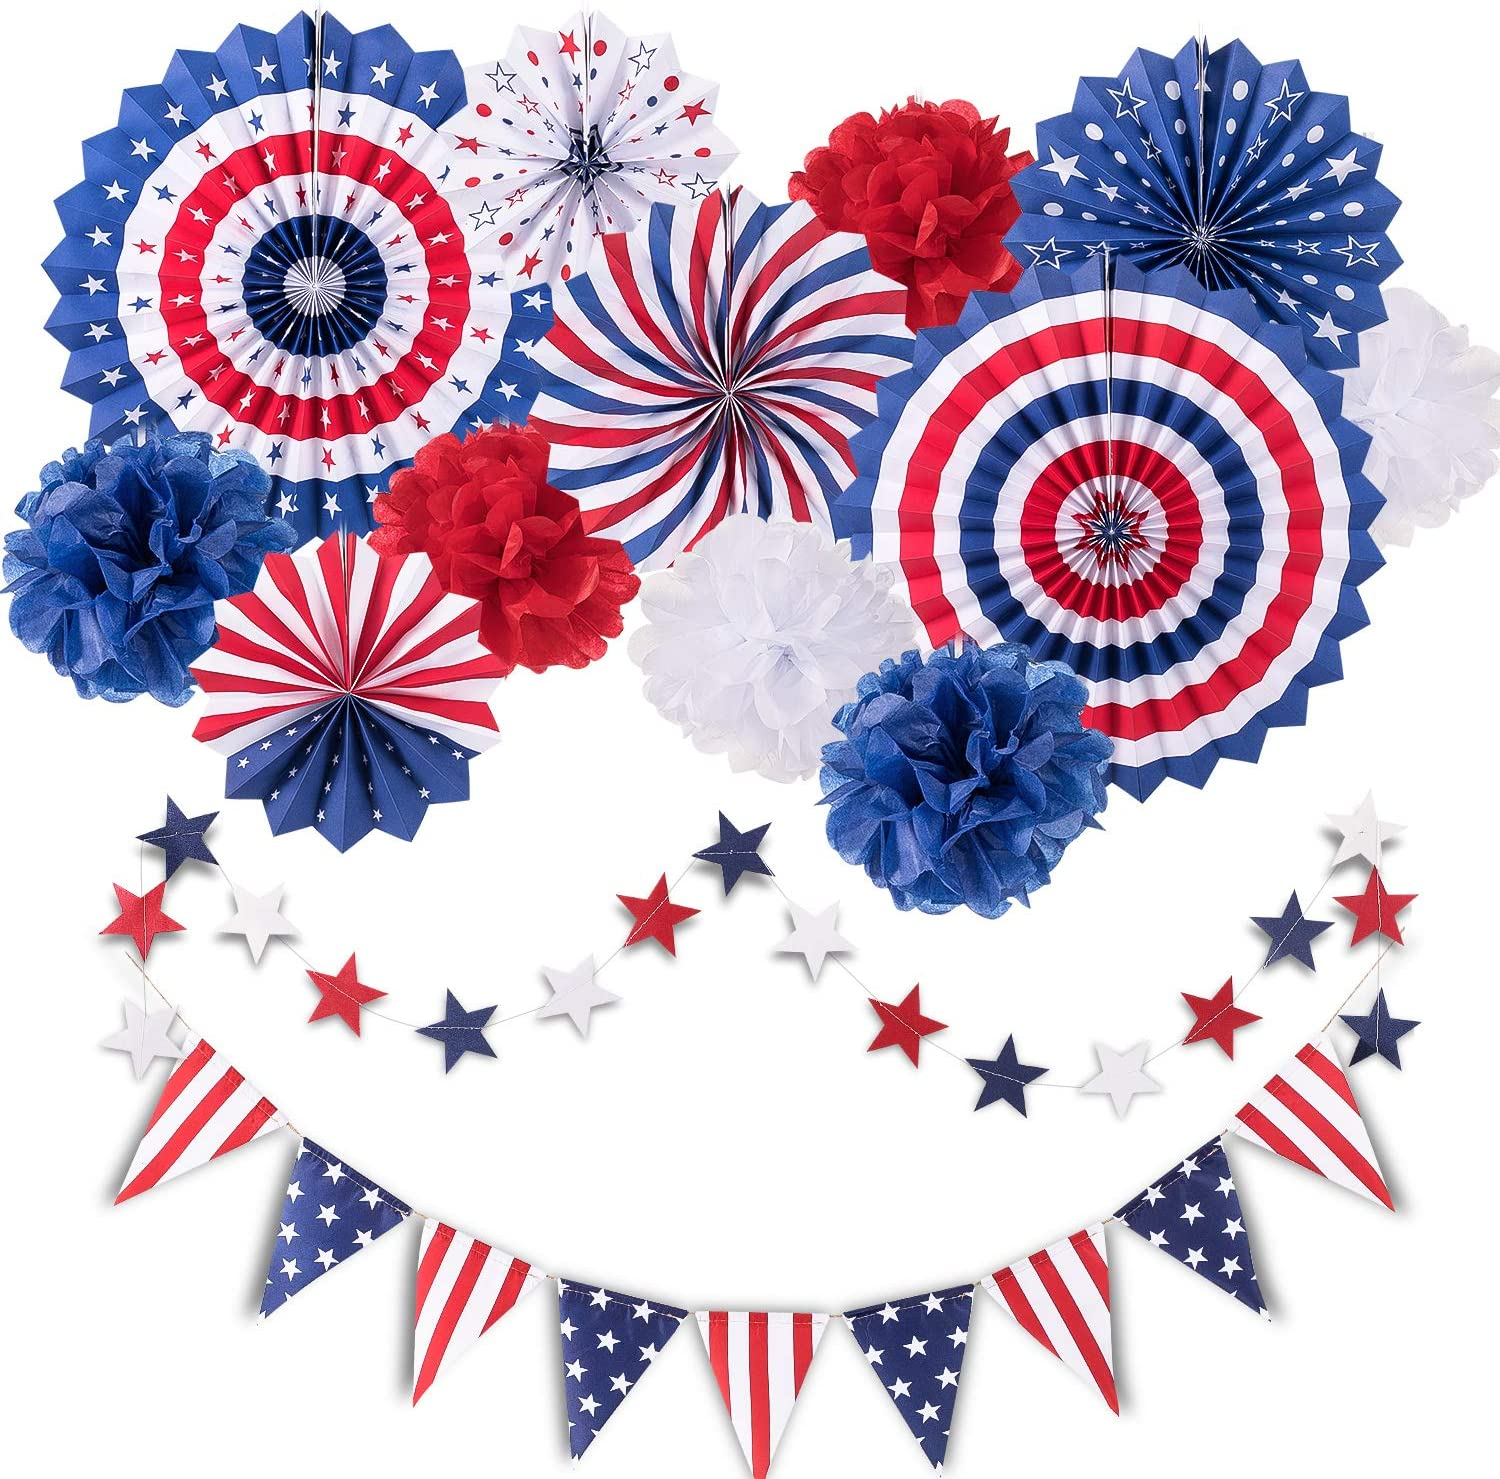 Amazon Com Whaline 14pcs Patriotic Party Decorations Set 4th Of July American Flag Party Supplies Hanging Paper Fans Paper Flower Balls Star Streamers Usa Flag Pennant Bunting Party Favors Arts Crafts Sewing